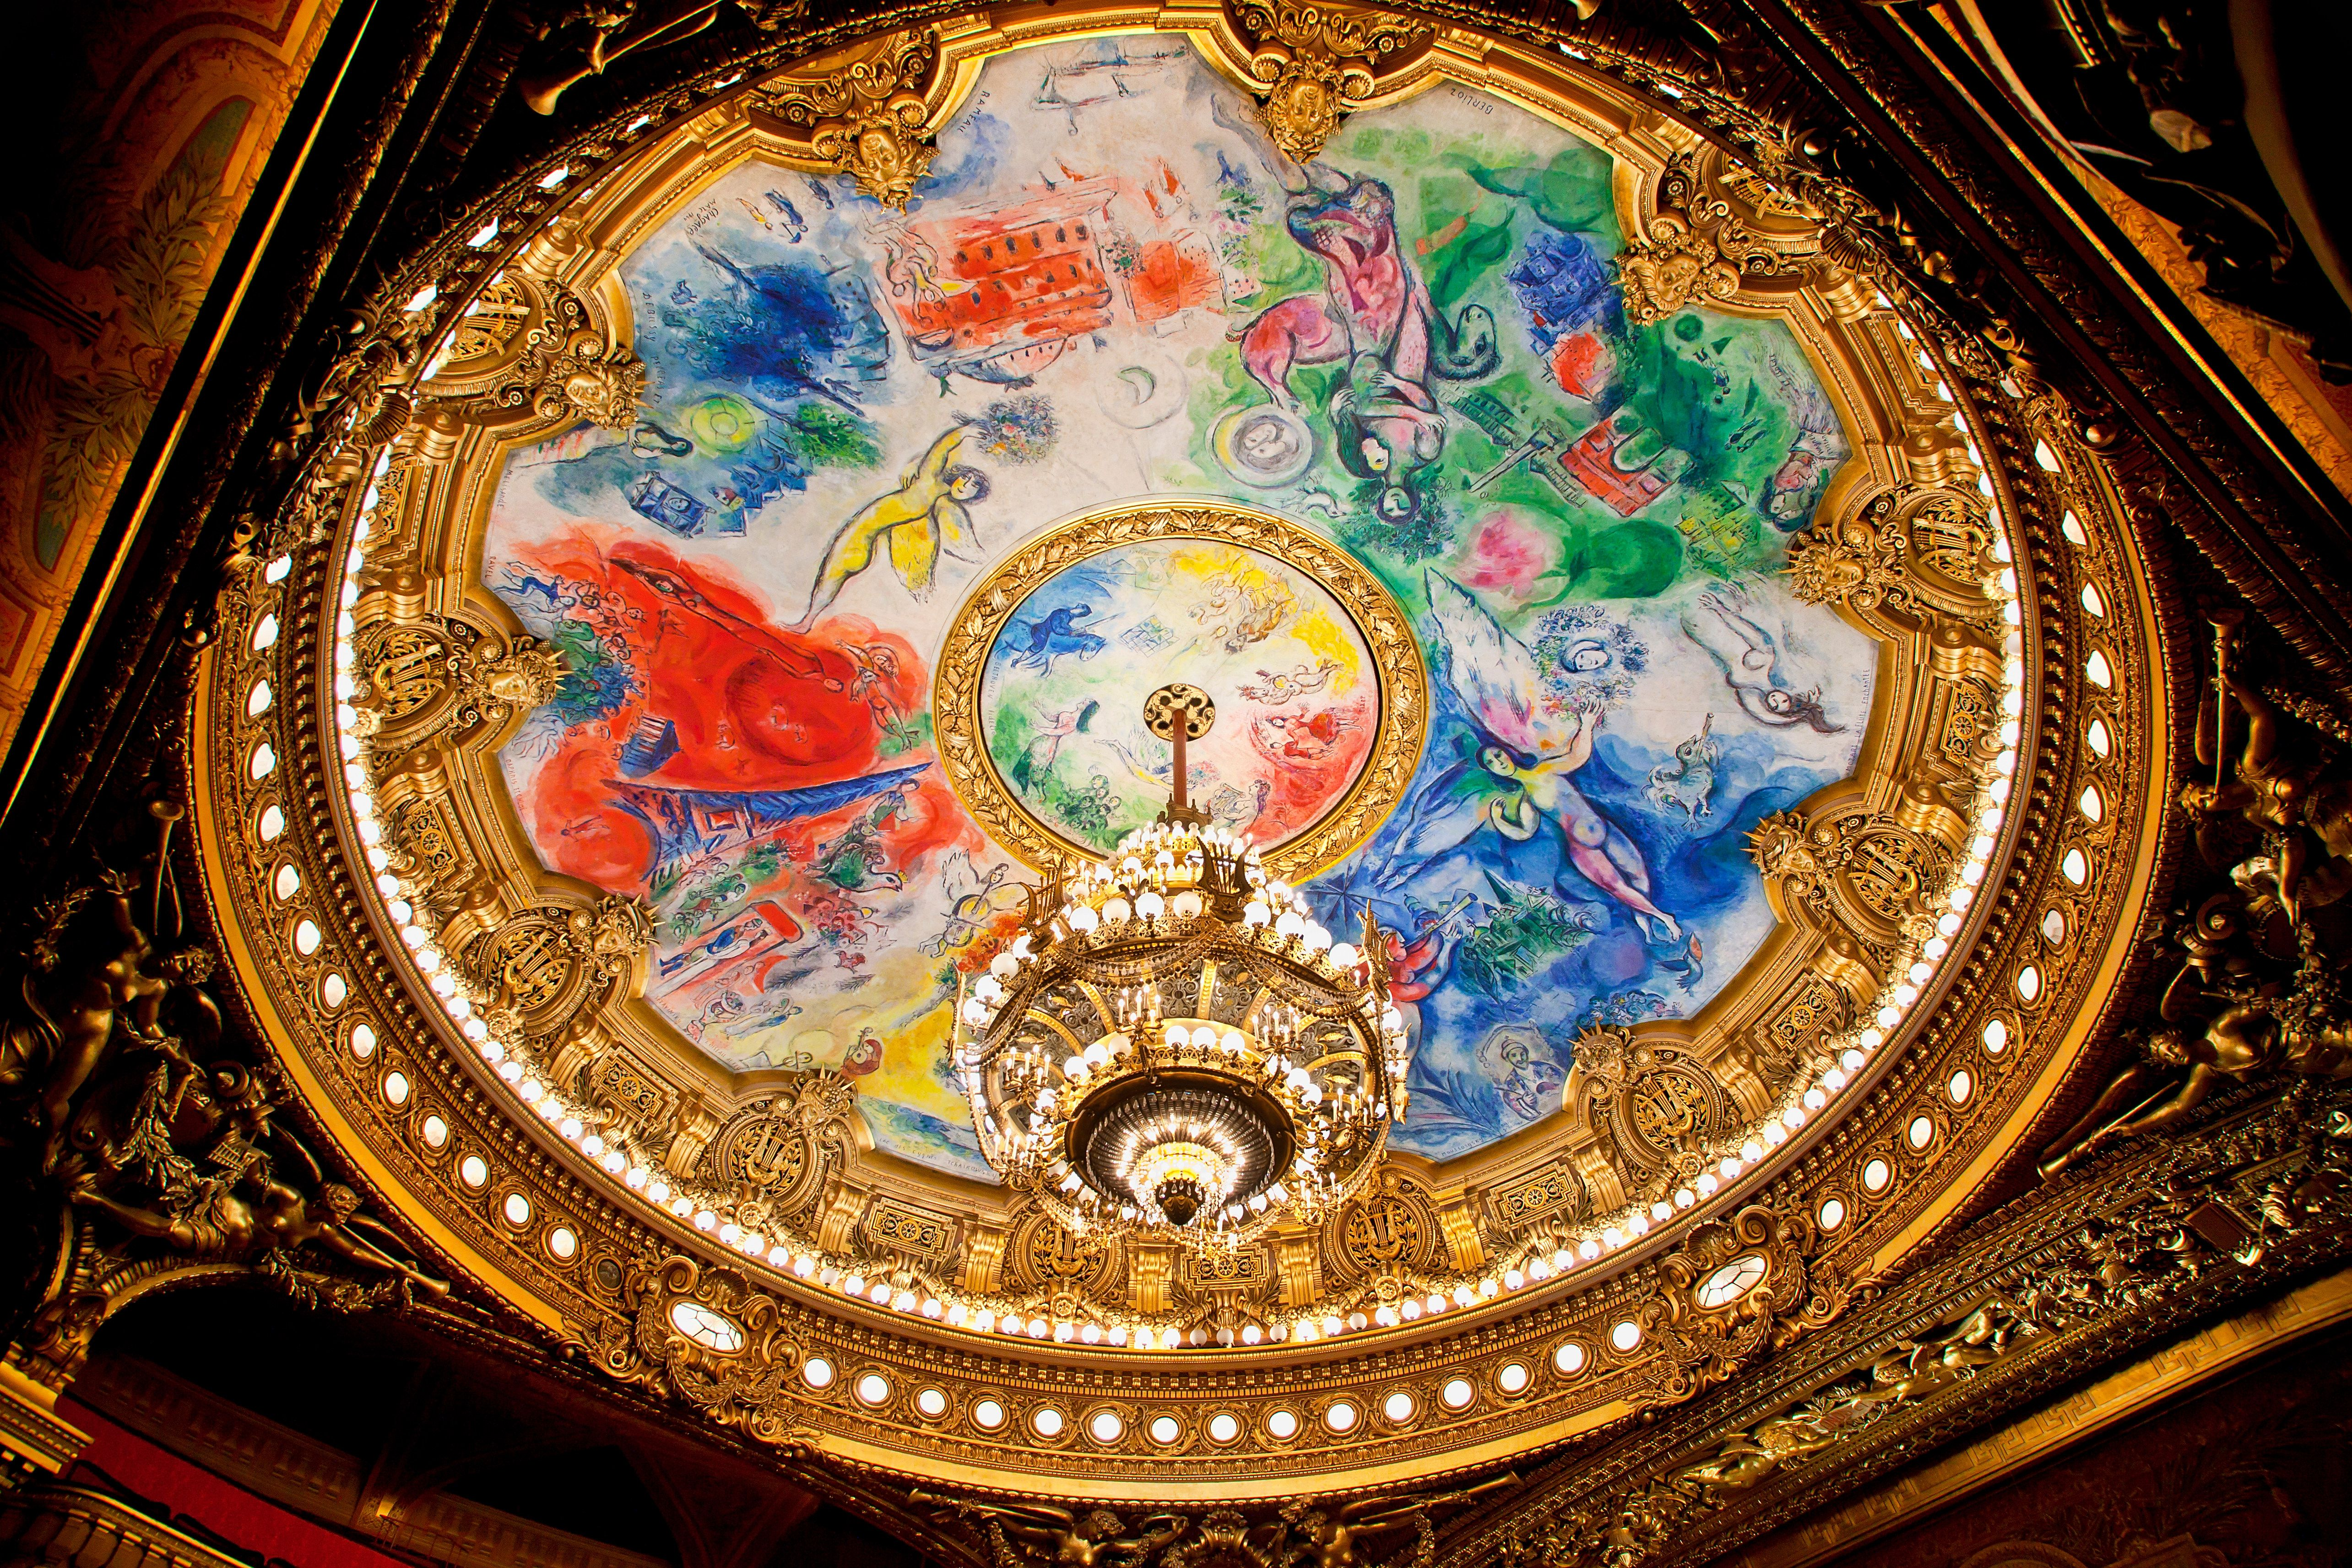 Round ceiling with paintings of colorful flying figures surrounded by gold molding